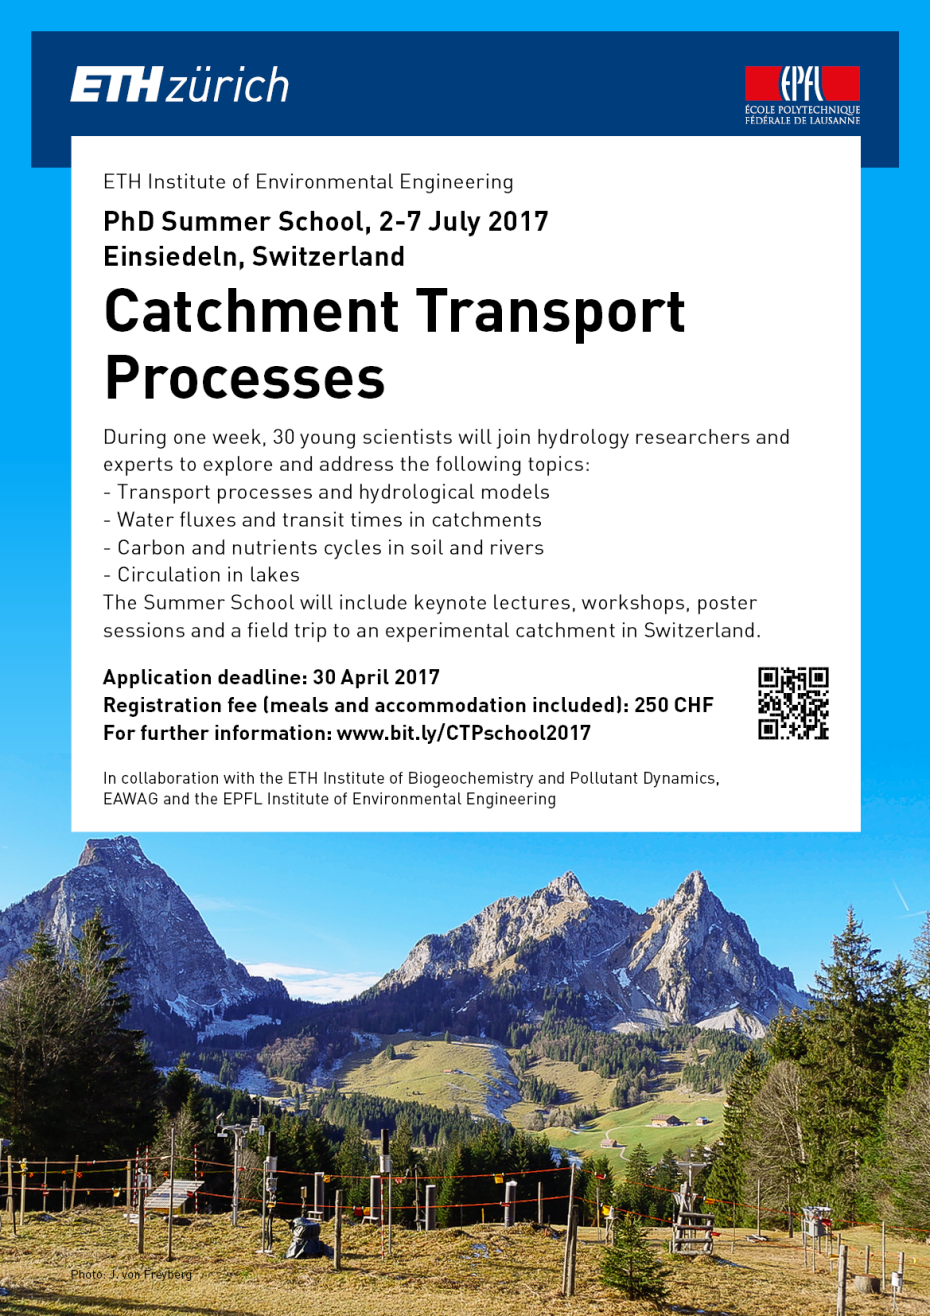 Catchment Transport Processes Summer School - Poster